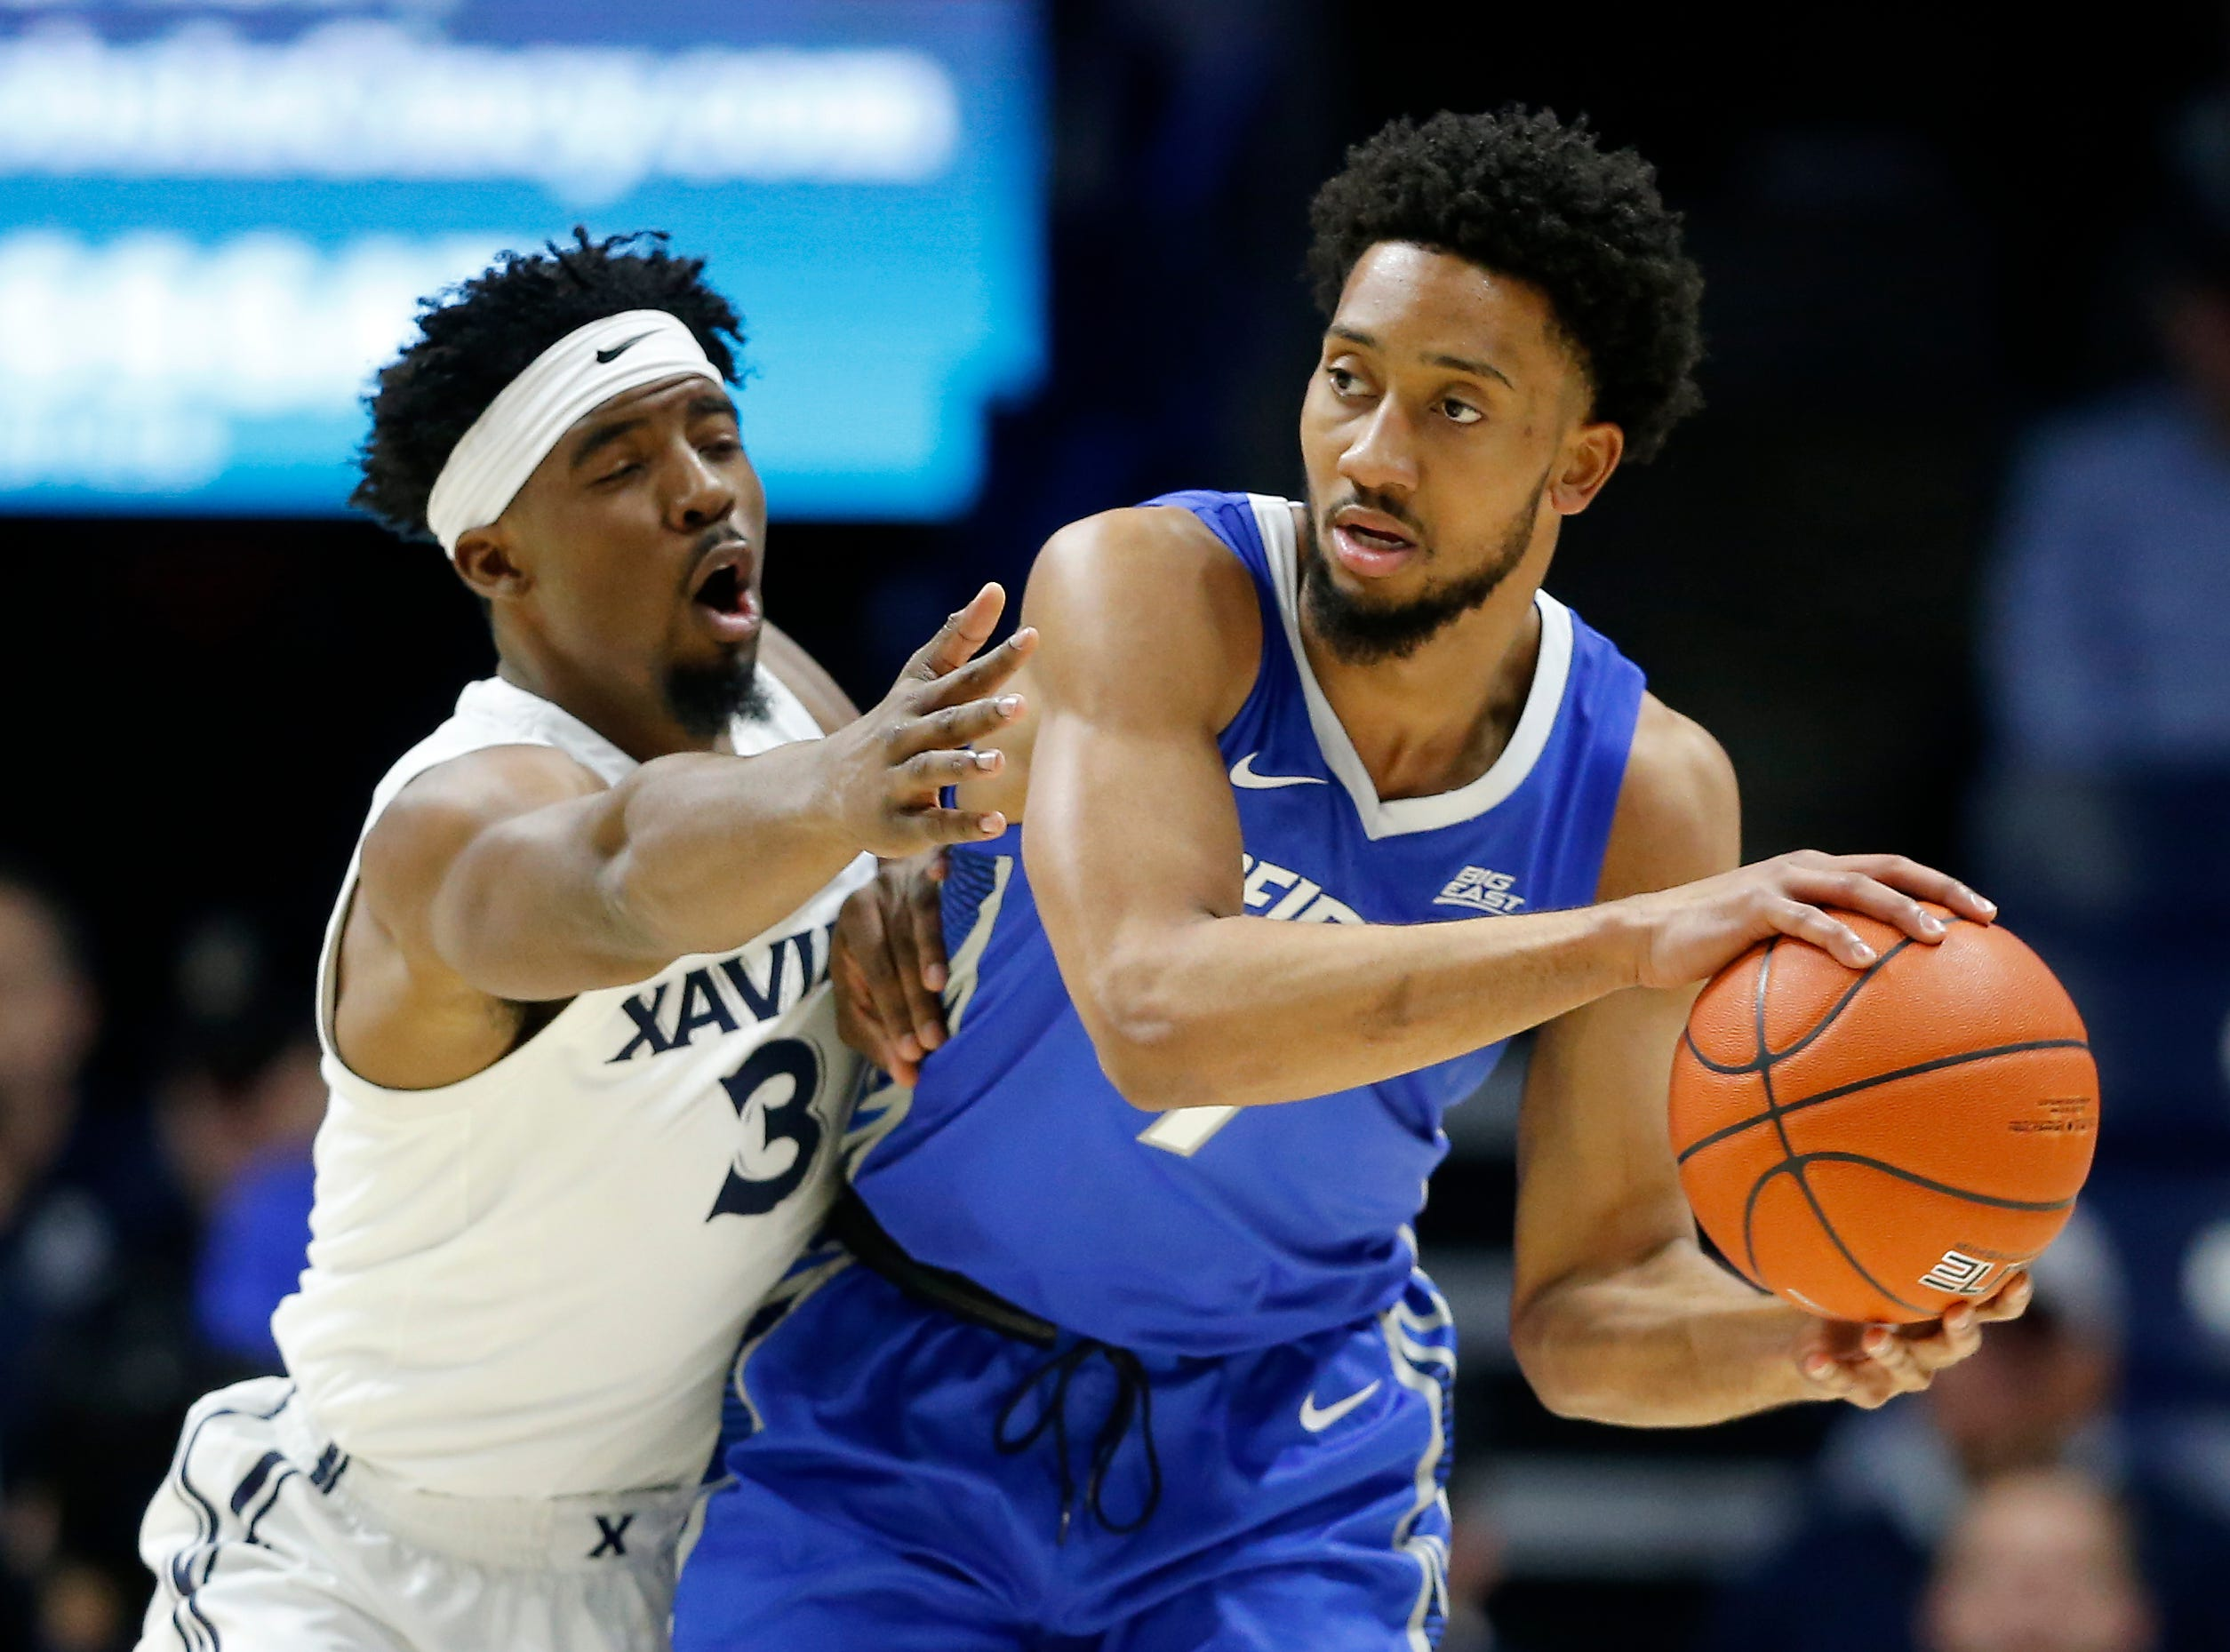 Xavier Musketeers guard Quentin Goodin (3) guards Creighton Bluejays guard Davion Mintz (1) in the first half of the NCAA Big East Conference basketball game between the Xavier Musketeers and the Creighton Bluejays at Xavier's Cintas Center in Cincinnati on Wednesday, Feb. 13, 2019. Xavier led 36-30 at halftime.